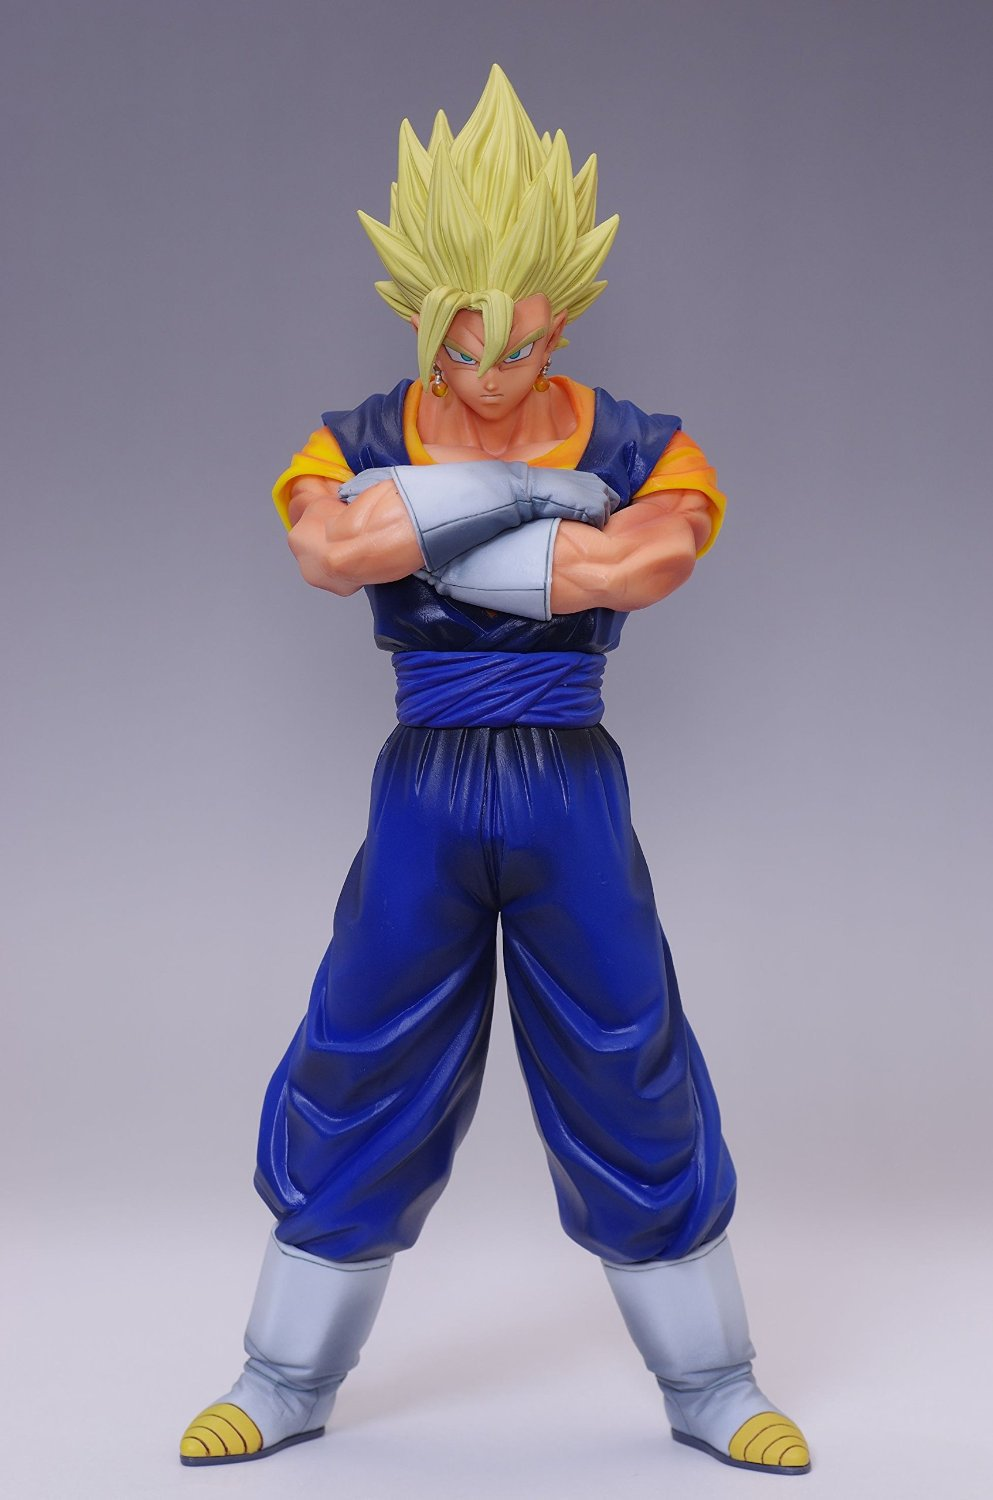 Anime Dragon Ball Z KAI The Vegetto Figure Master Stars Piece Super Saiyan Vegeta PVC Action Figure Collection Kids Toys Doll